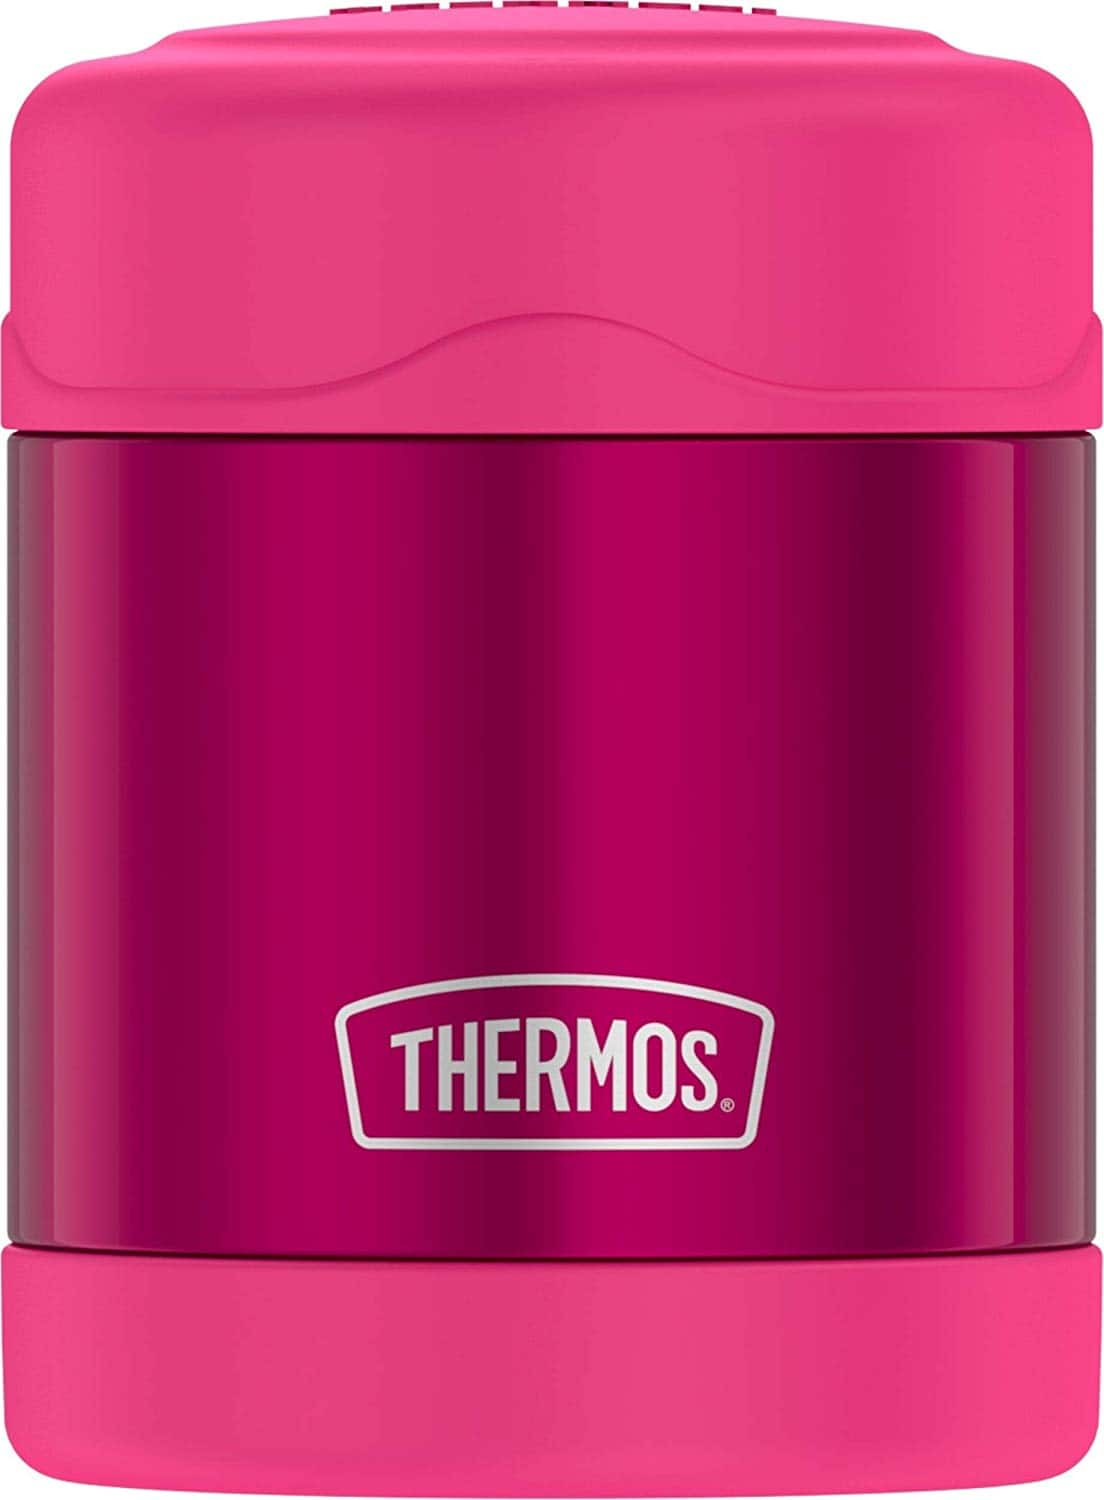 Thermos Funtainer 10 Ounce Food Jar, Pink $10.49